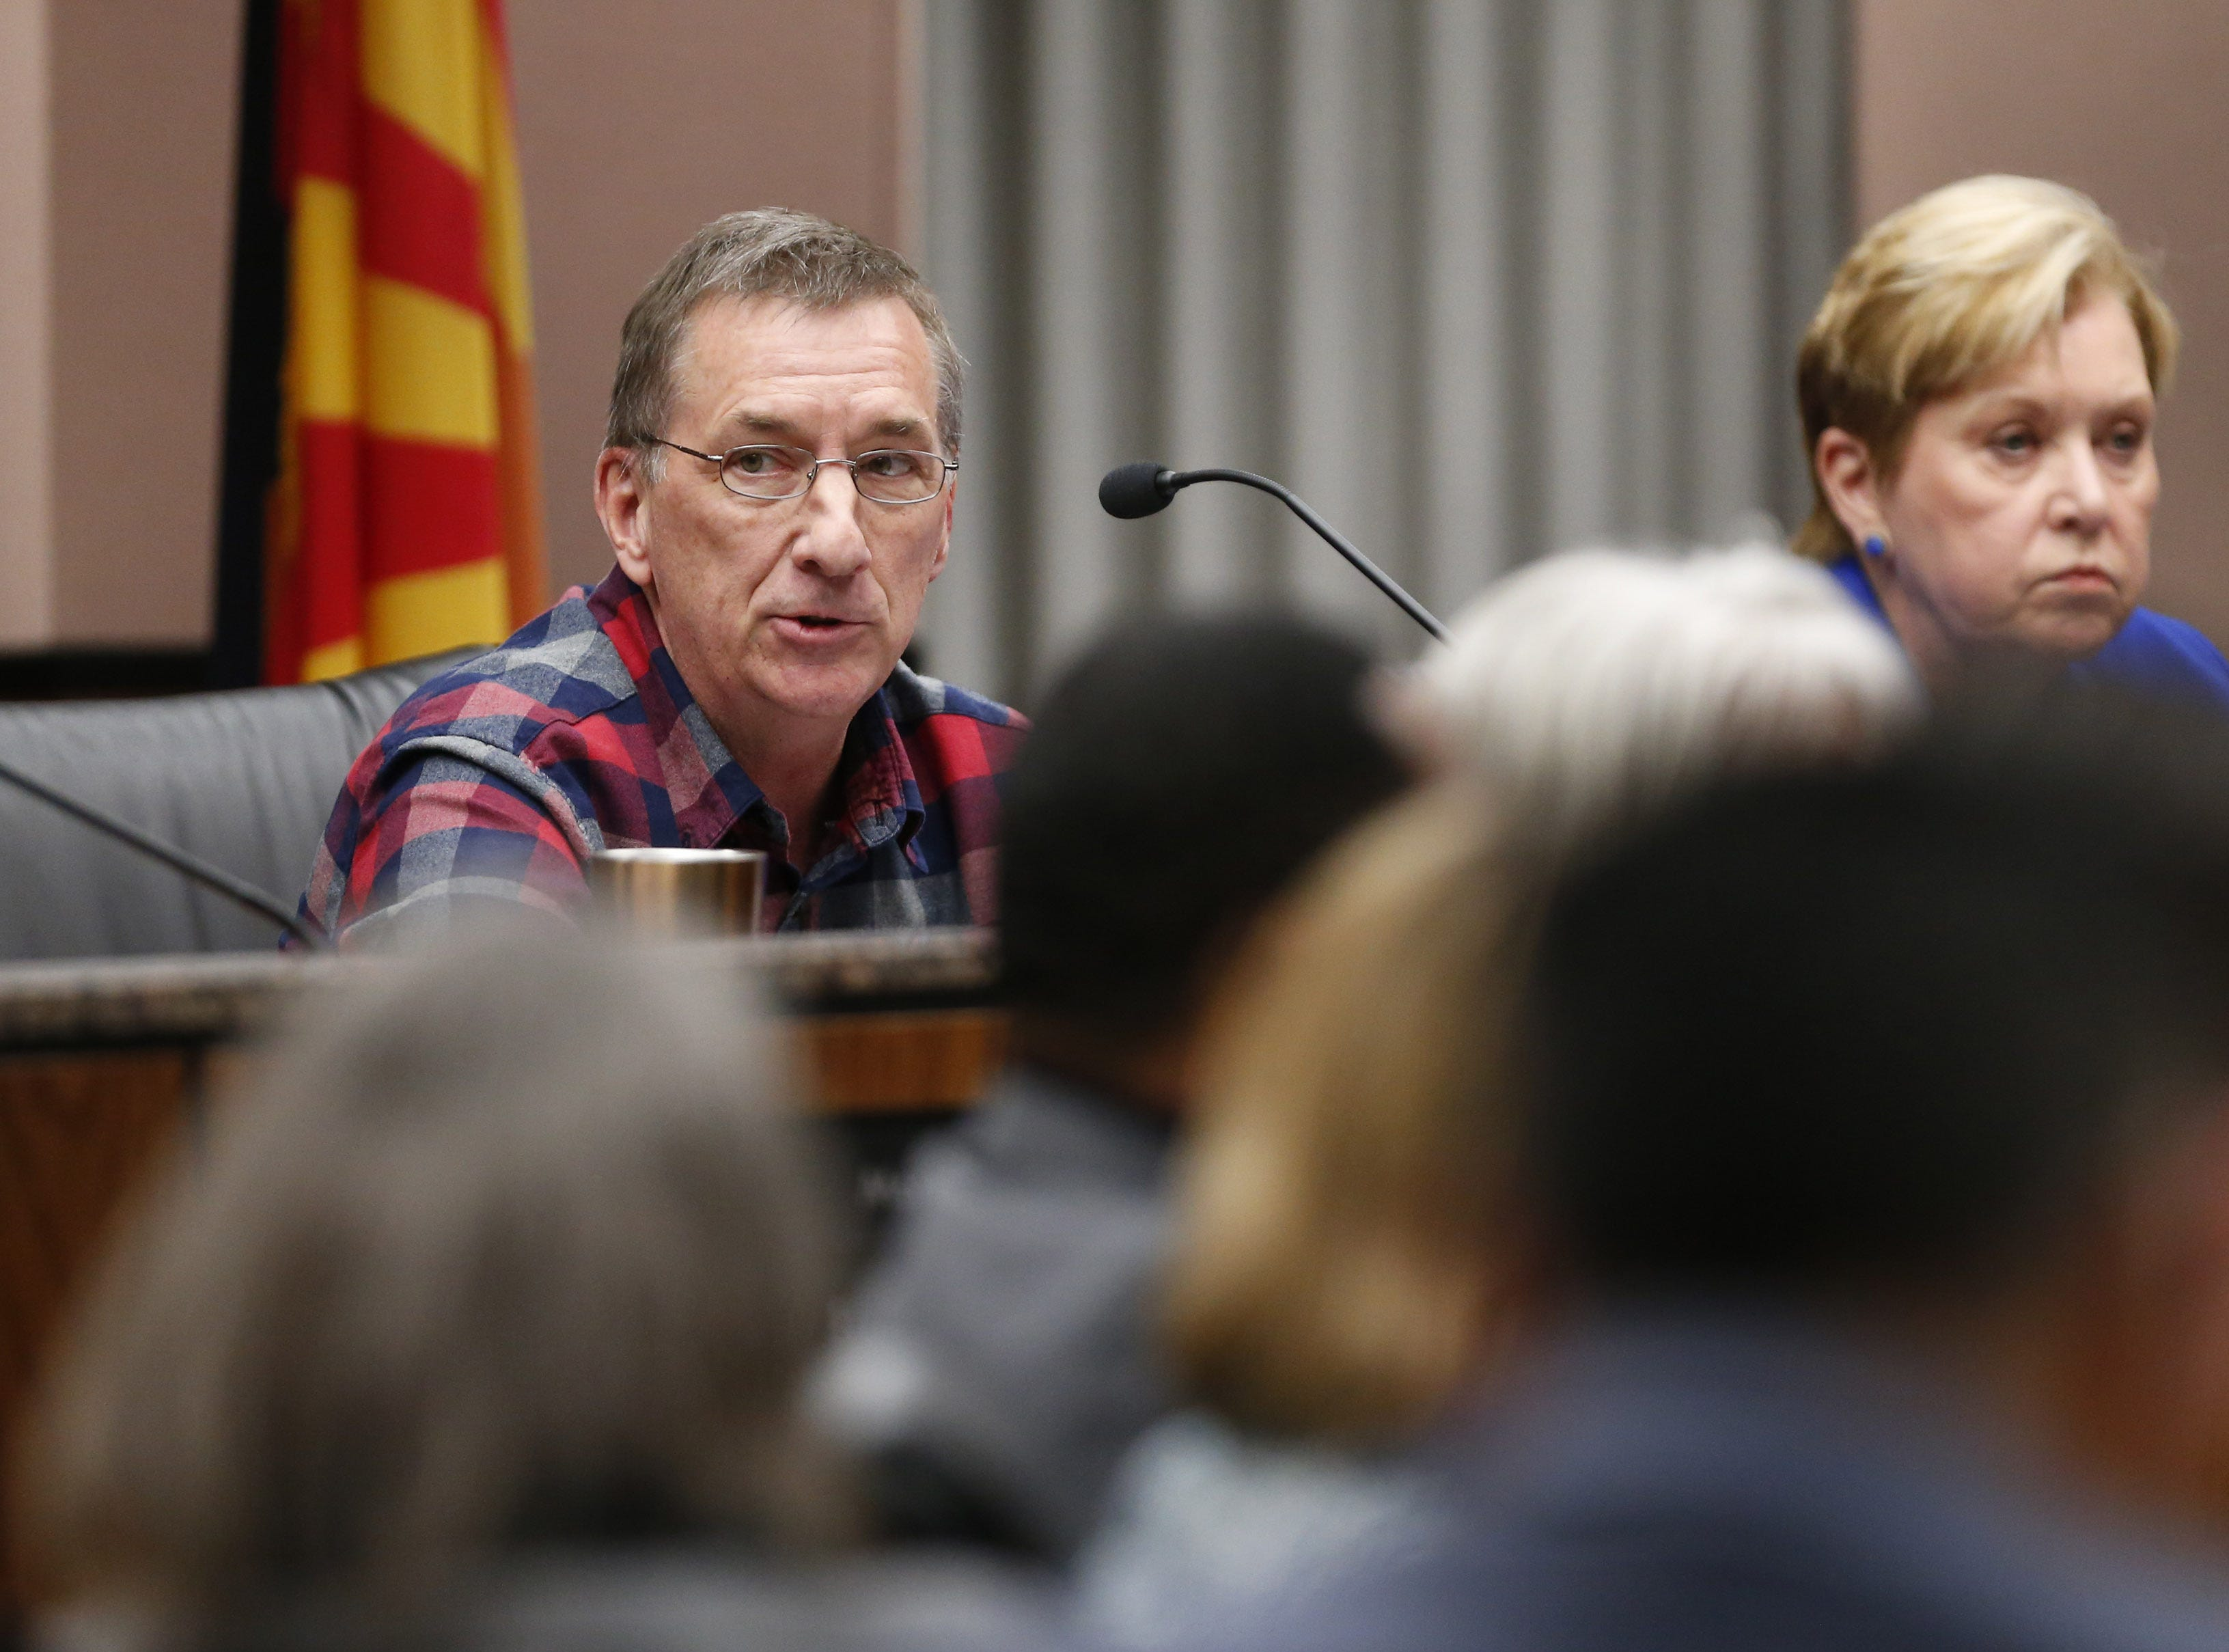 President Laurin Hendrix speaks after resigning during a special meeting of the Maricopa County Community College District Governing Board in Tempe January 15, 2019. His successor, Linda Thor, is seated next to him.